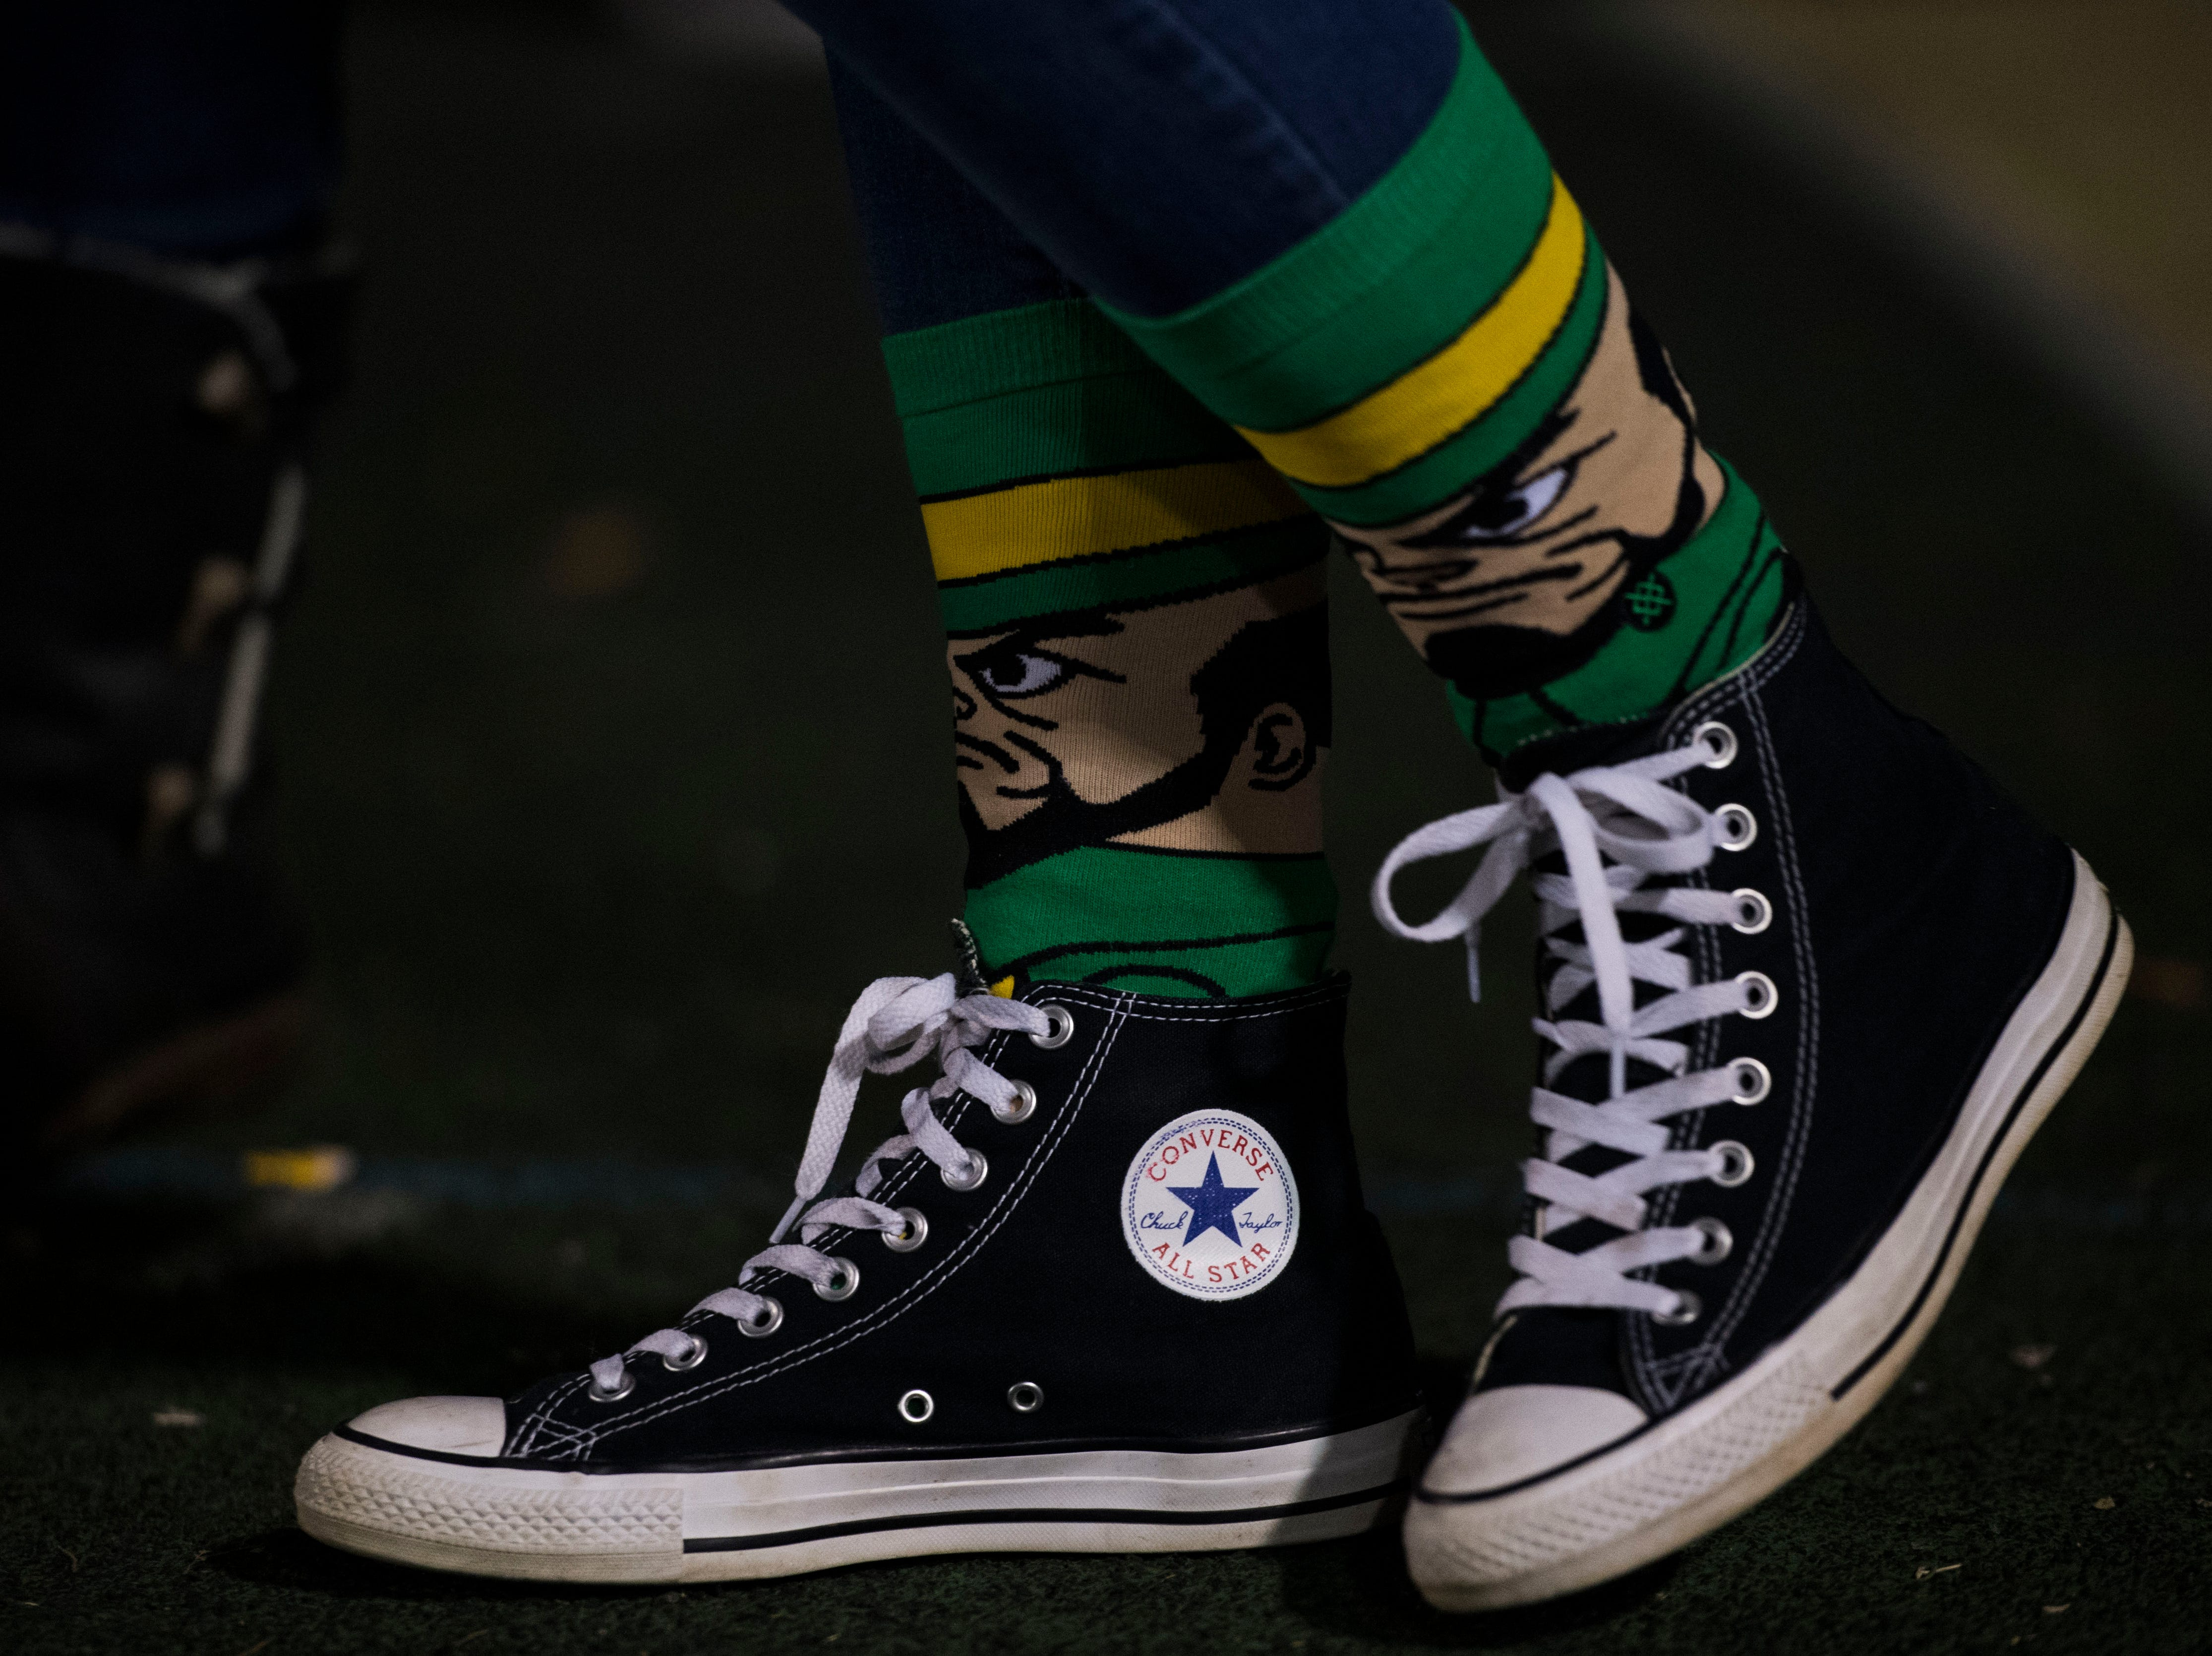 Erin Nicely wears spirited socks before a game between Catholic and Central at Catholic Friday, Nov. 23, 2018.